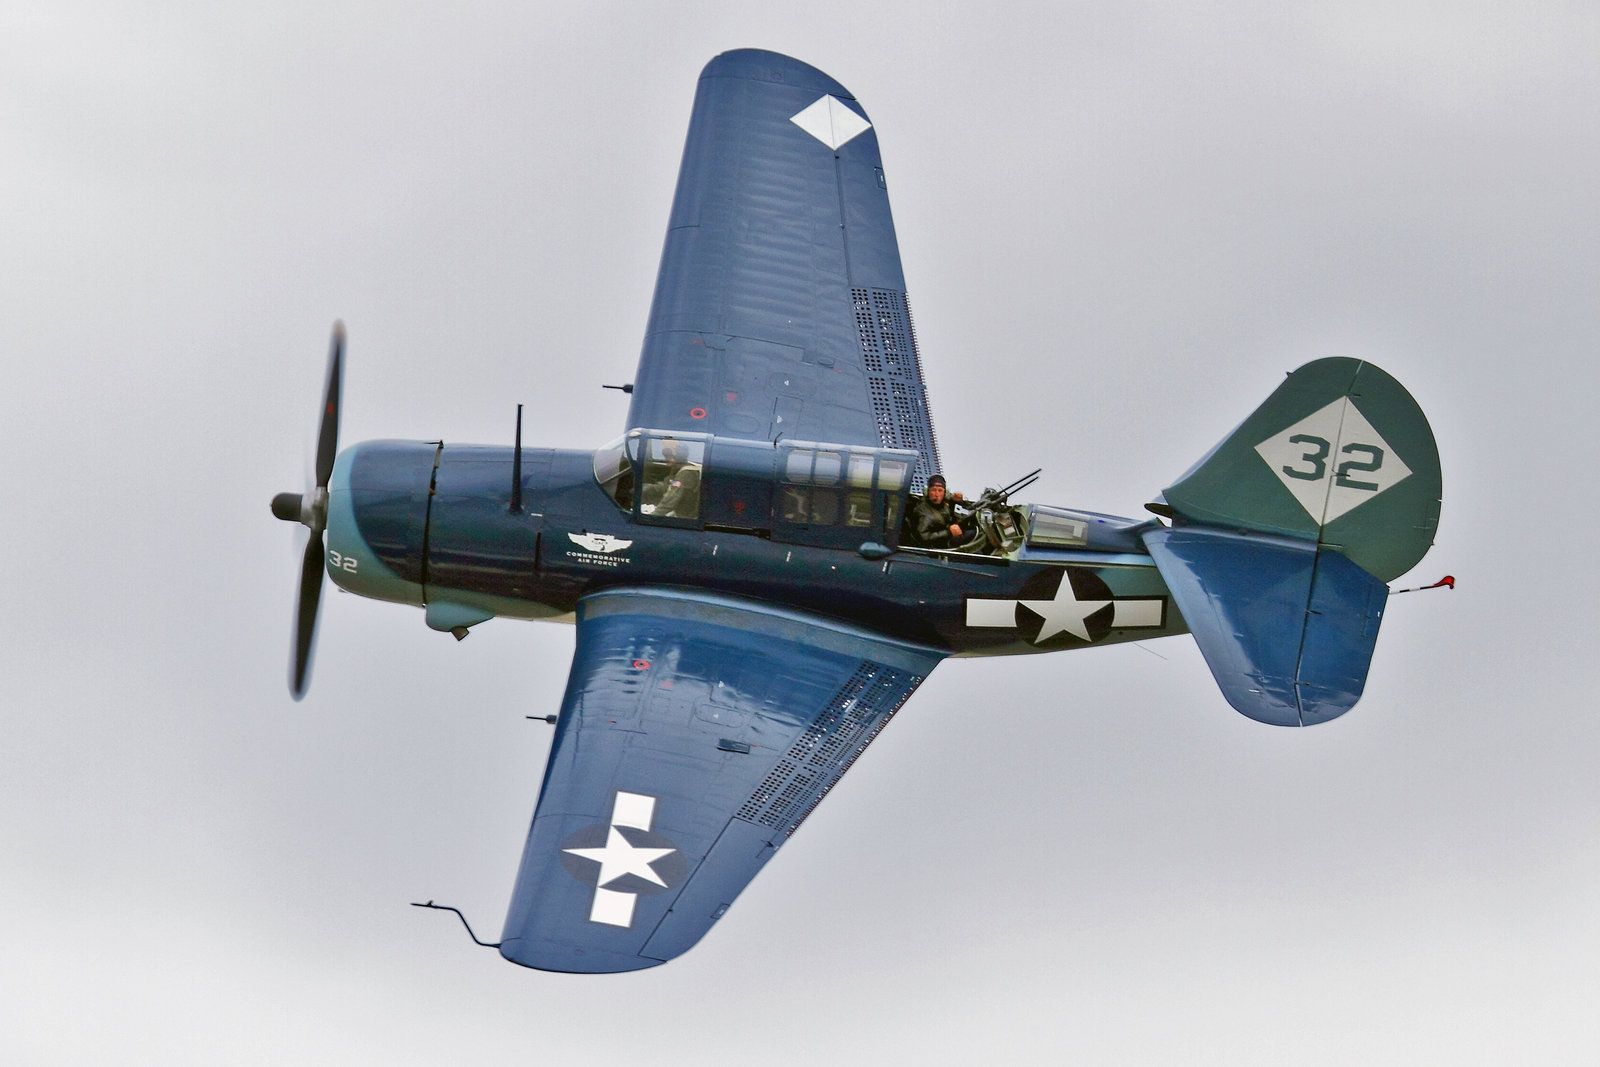 curtis_sb2c_5_helldiver__updated__by_opticallightspeed-d4fahcr.jpg 1 600×1 067 pikseli